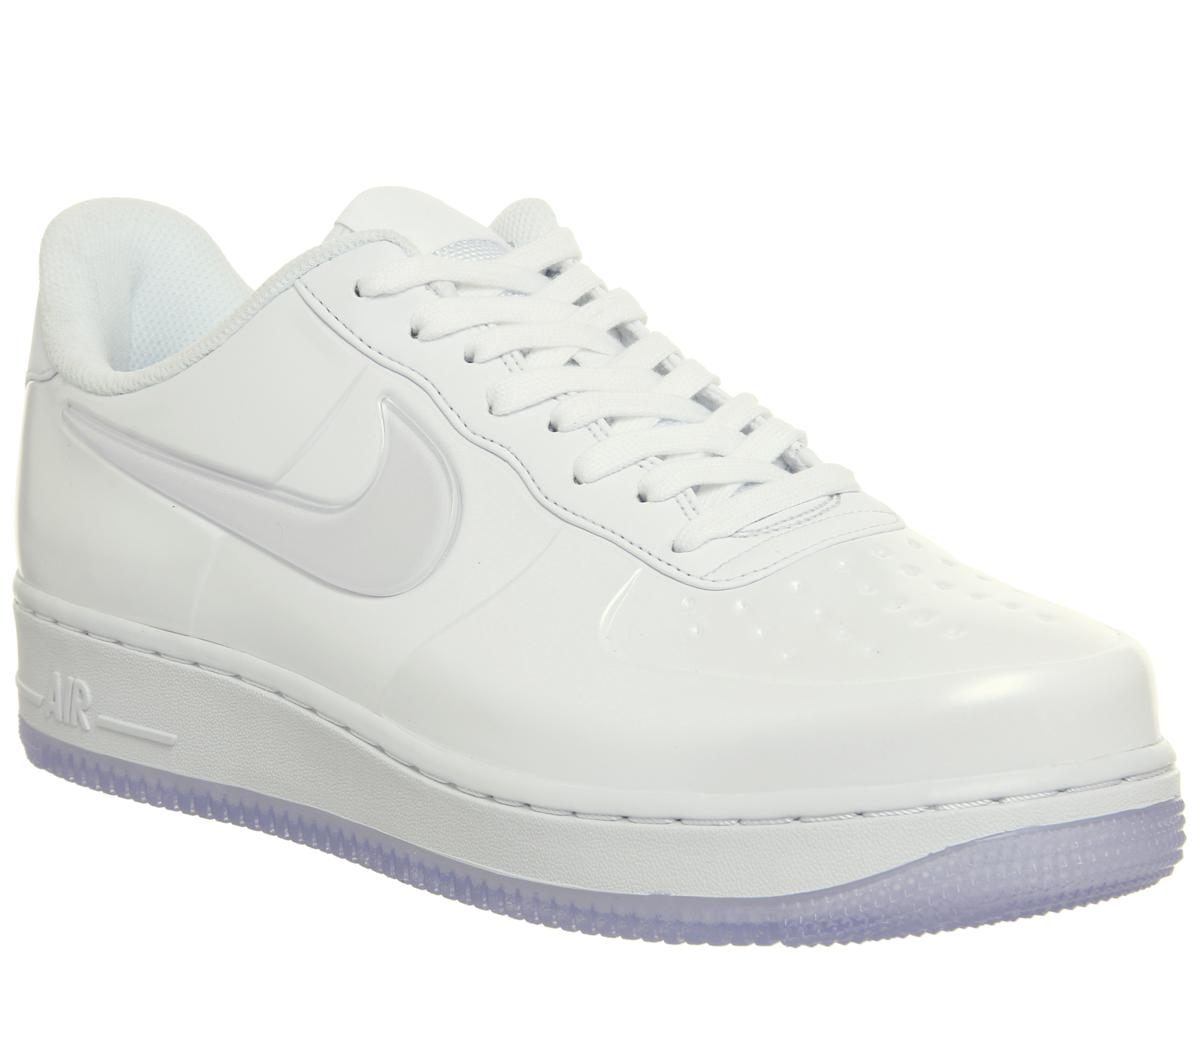 Nike Af1 Foamposite Pro Cup Trainers